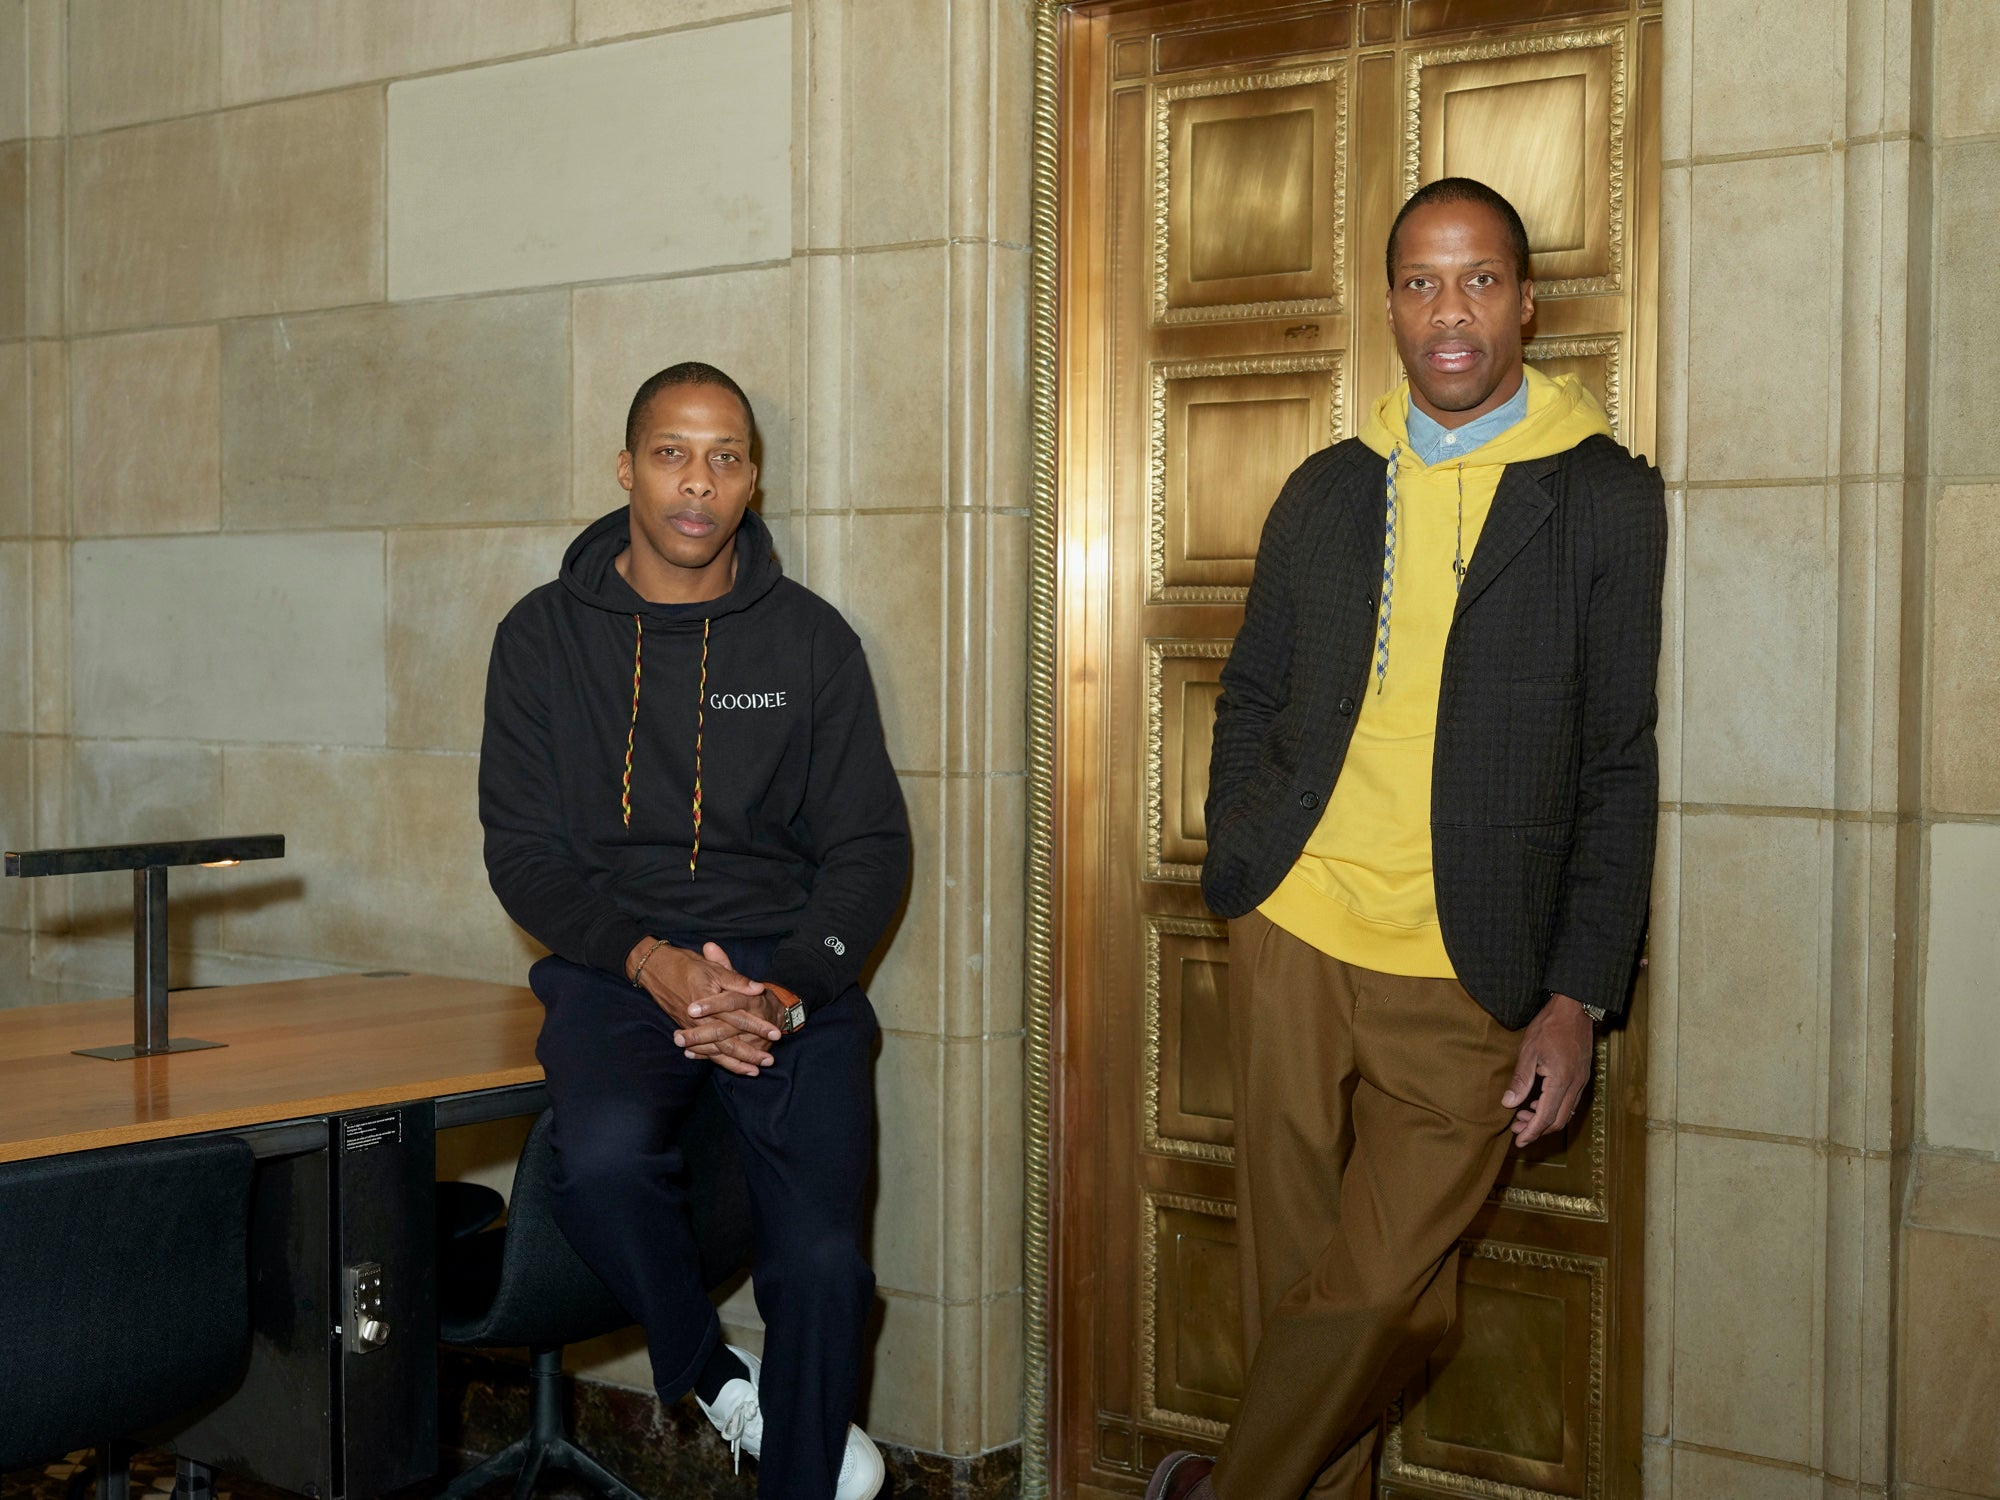 Portrait of Byron and Dexter Peart wearing casual clothes and leaning in a doorway